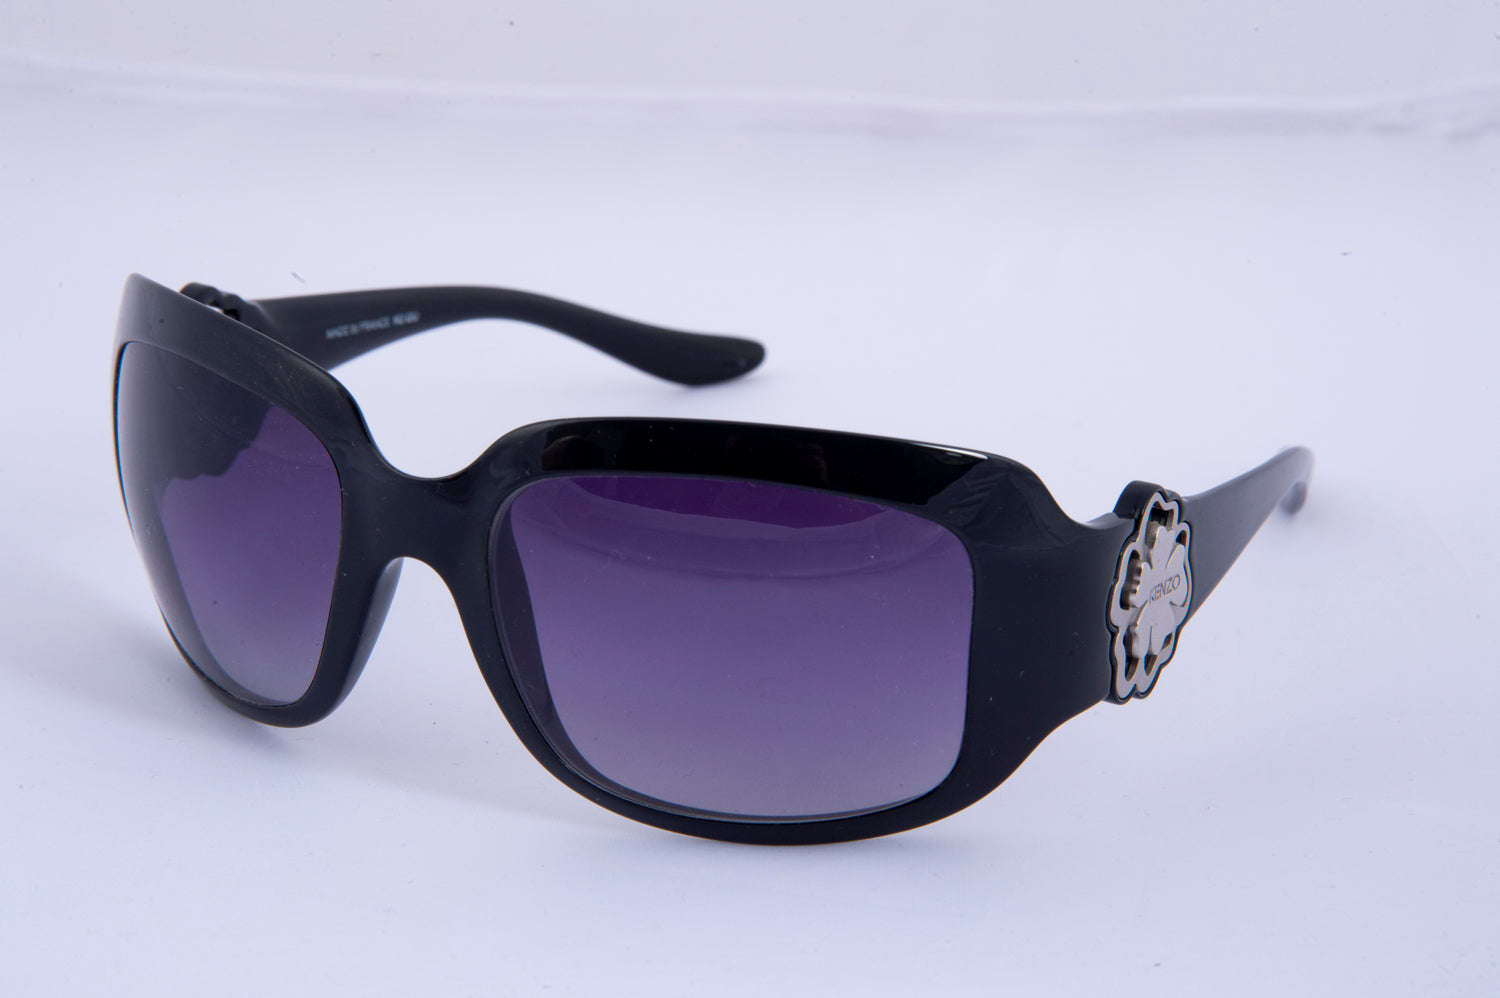 Kenzo oversized rectangular sunglasses